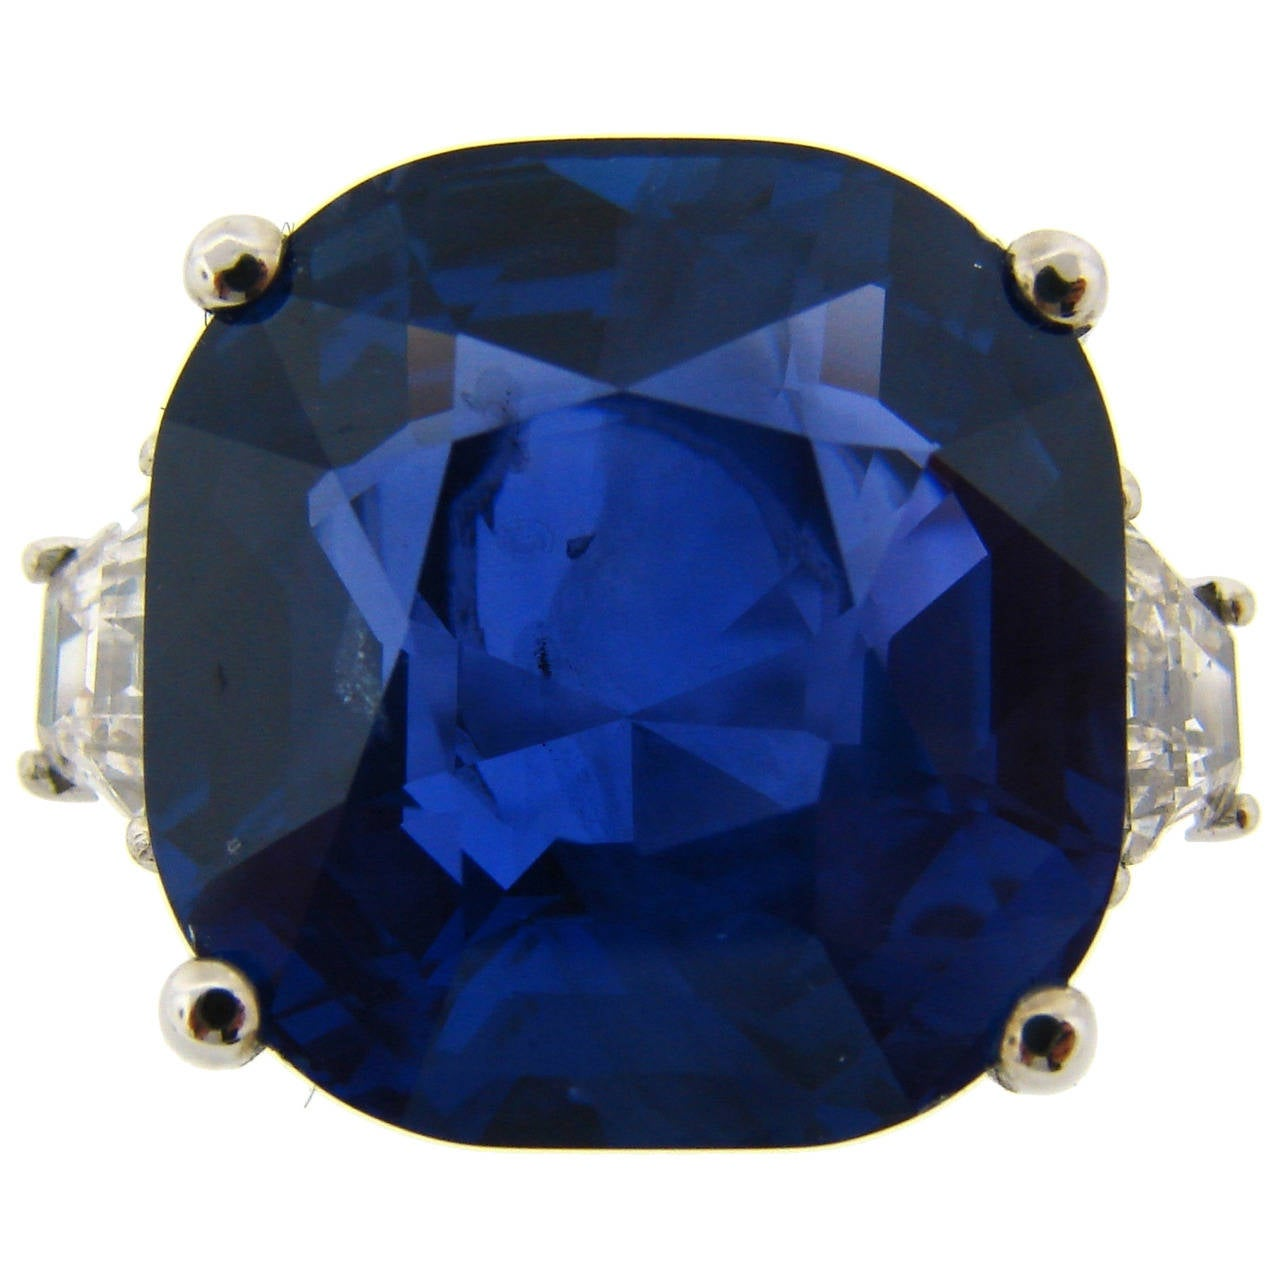 19.02 Carat Ceylon Natural No Heat Certified Sapphire Diamond  Ring